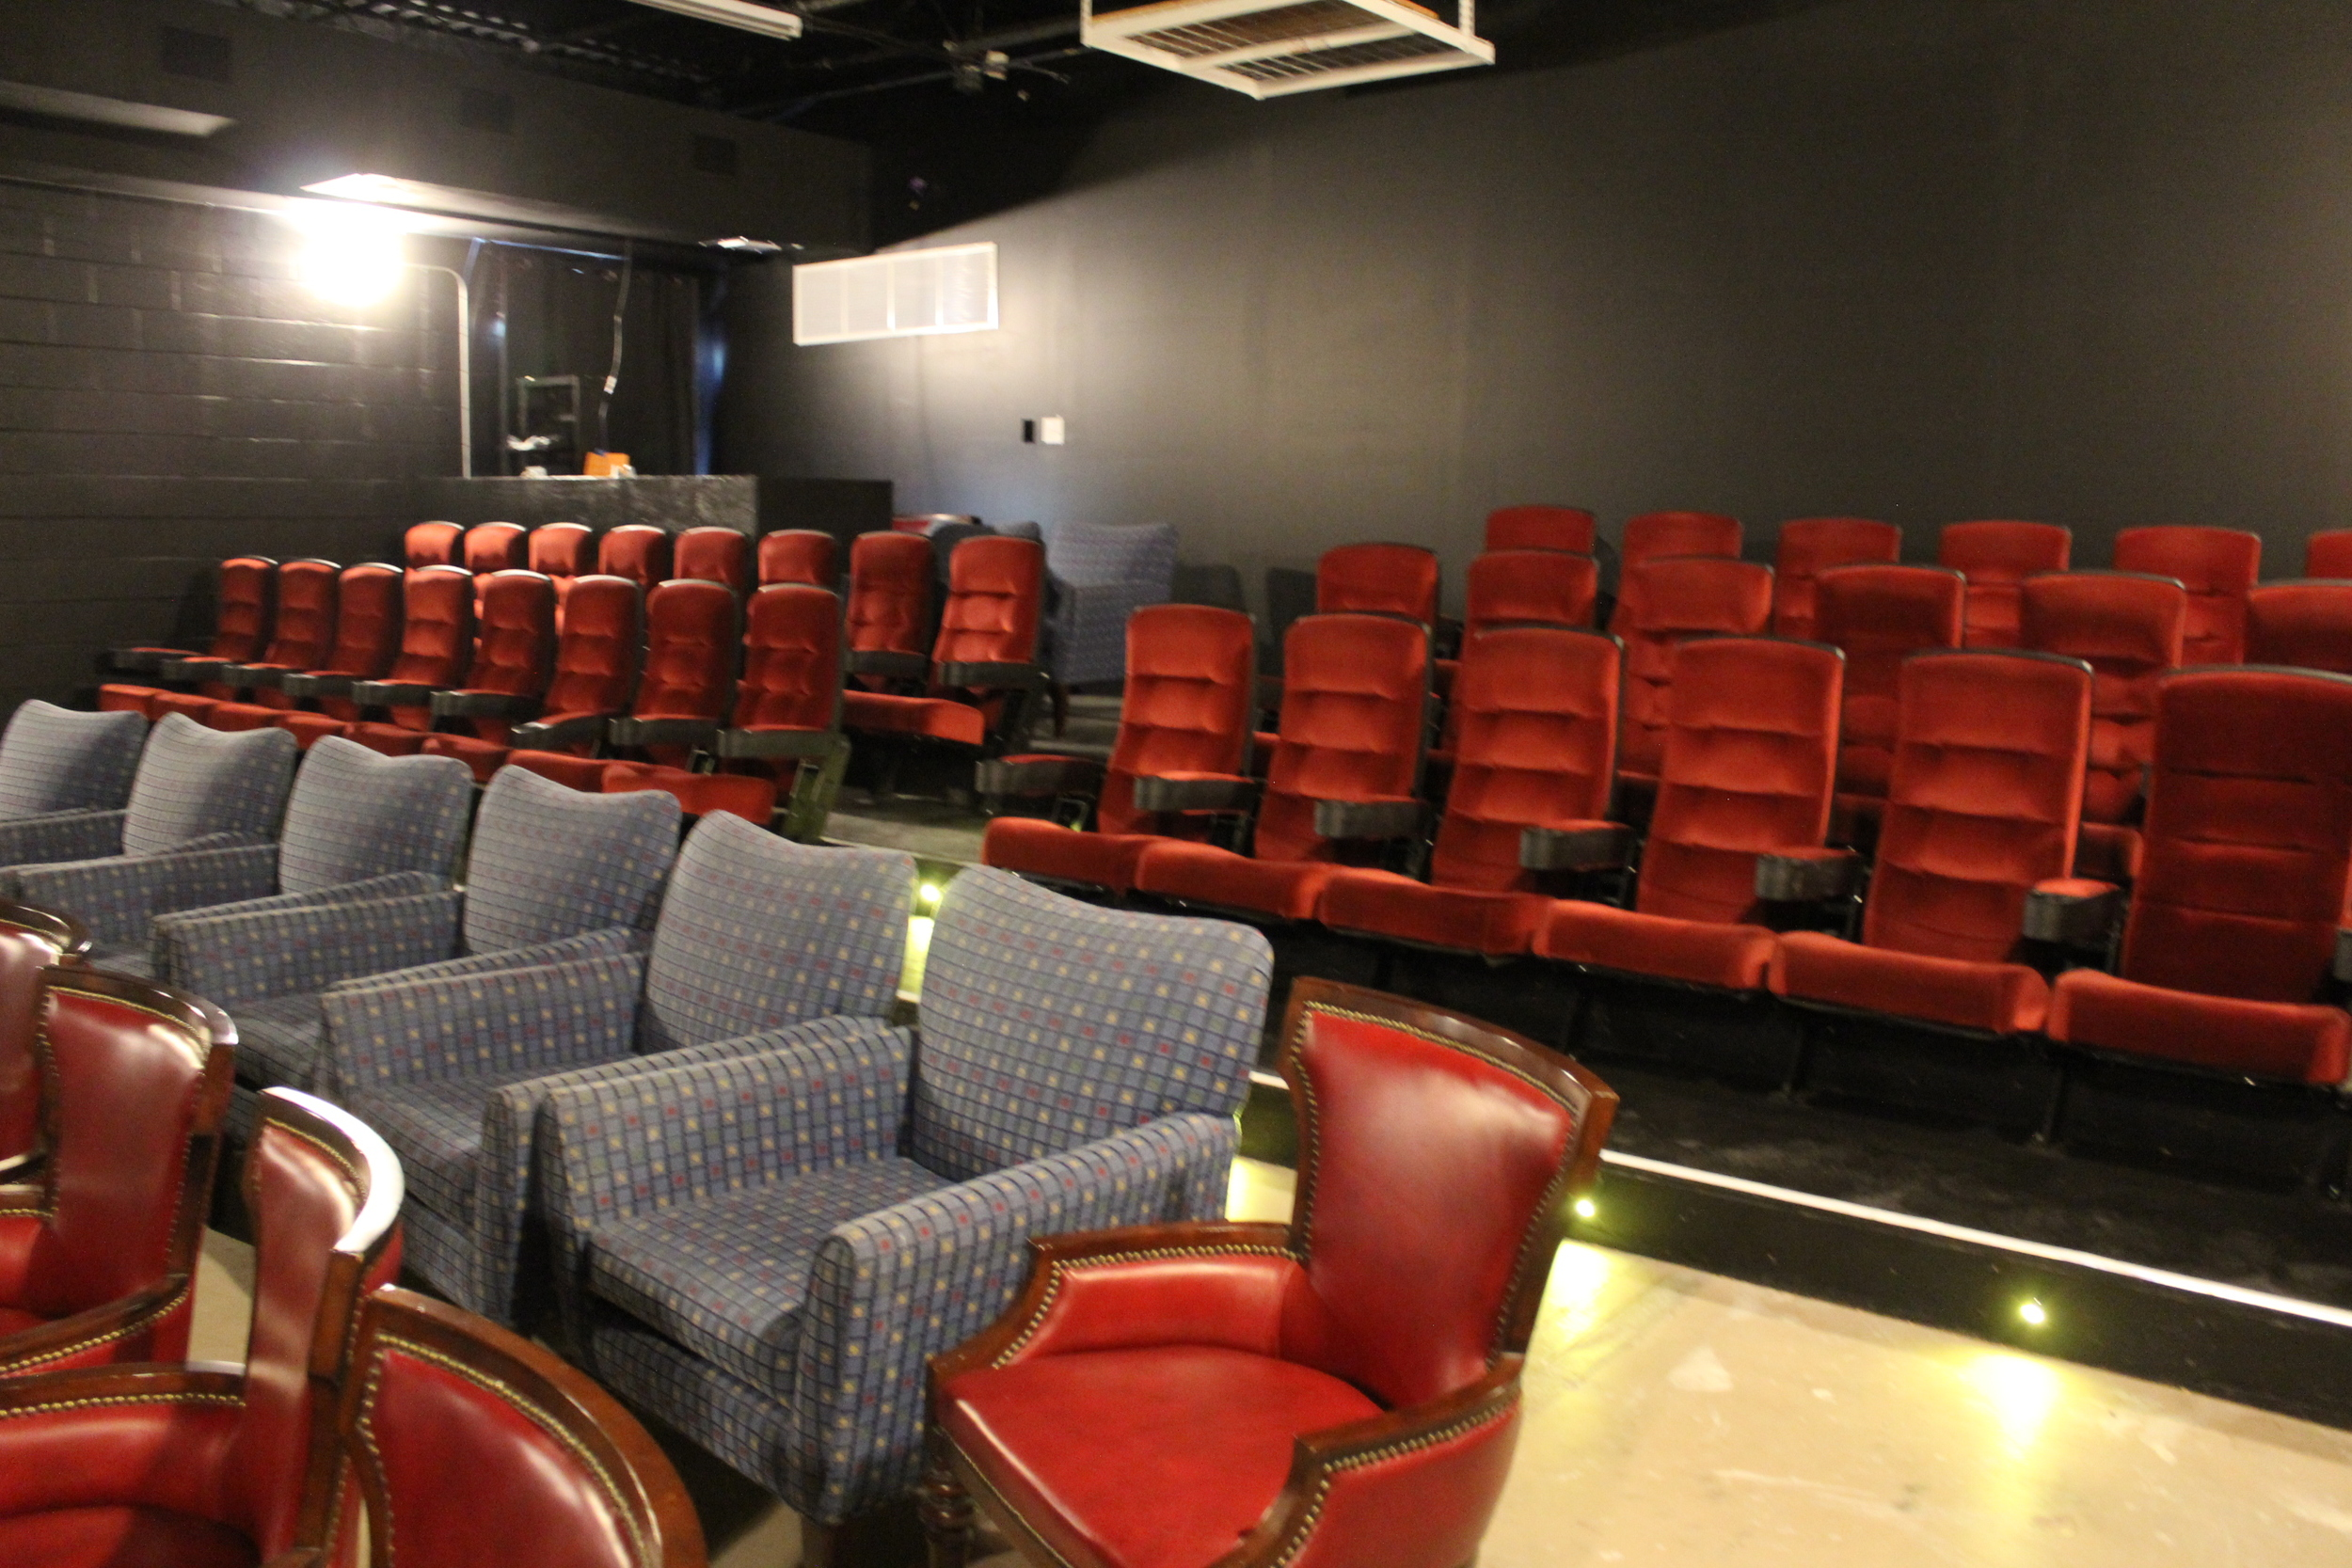 Picture of screen 2 with big blue chairs and theater seats on risers